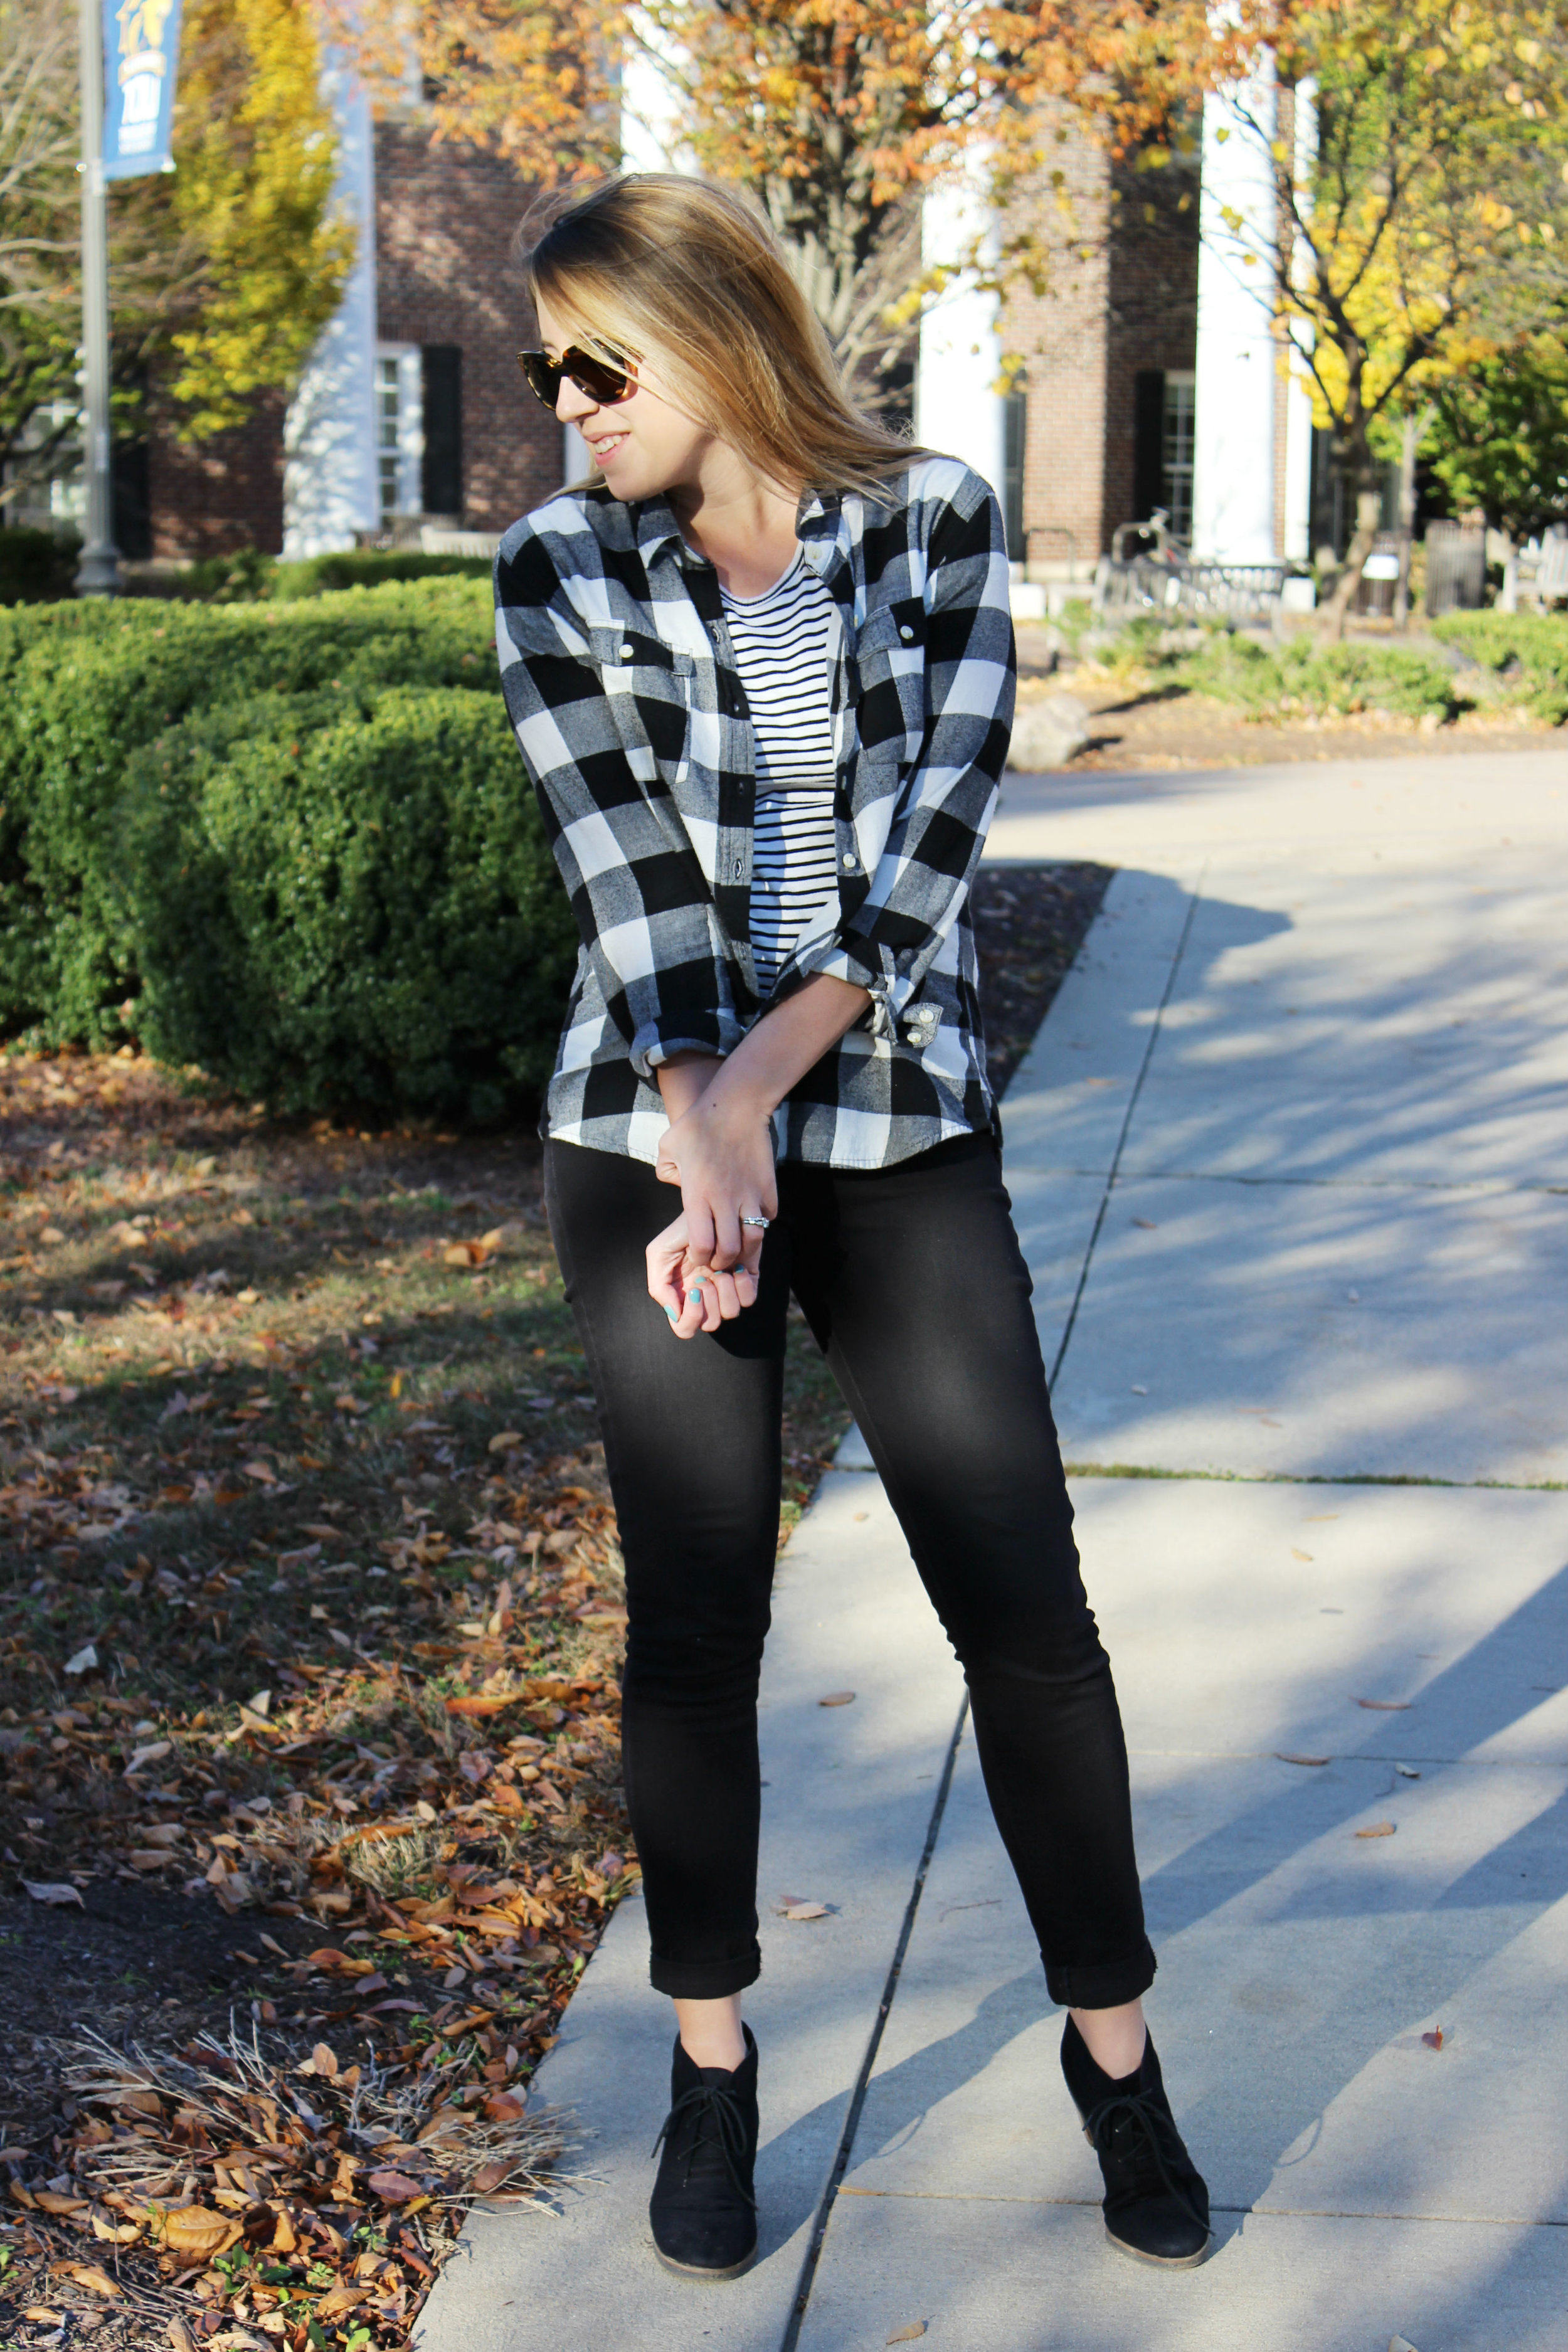 Wearing: Black, White, and Really Cozy